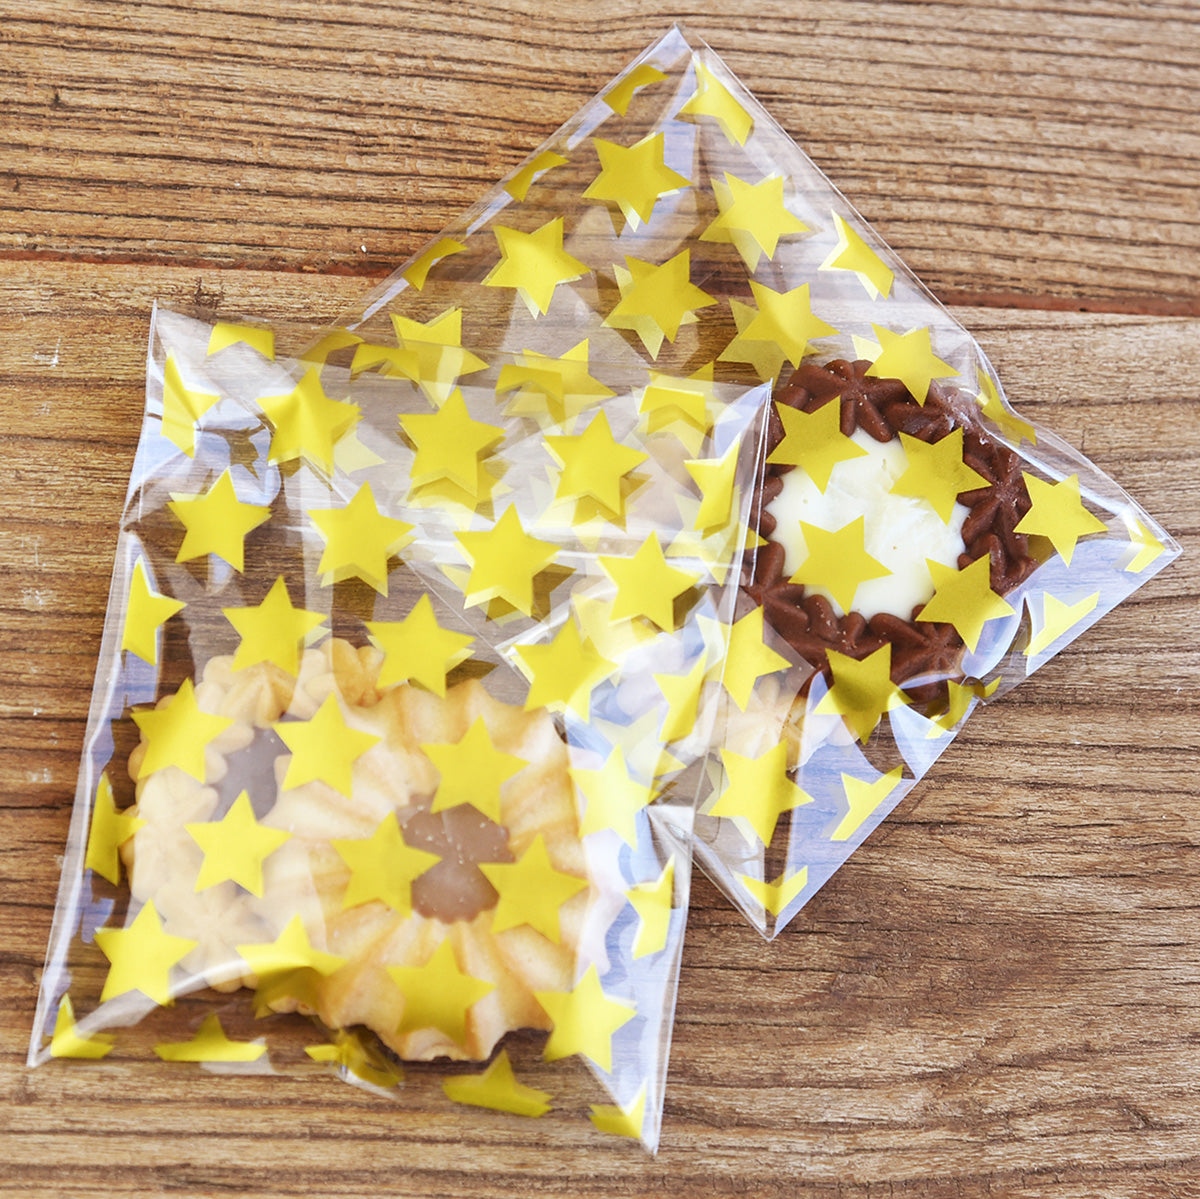 Gold Stars Self-Adhesive Plastic Gift Bags 100 Pieces